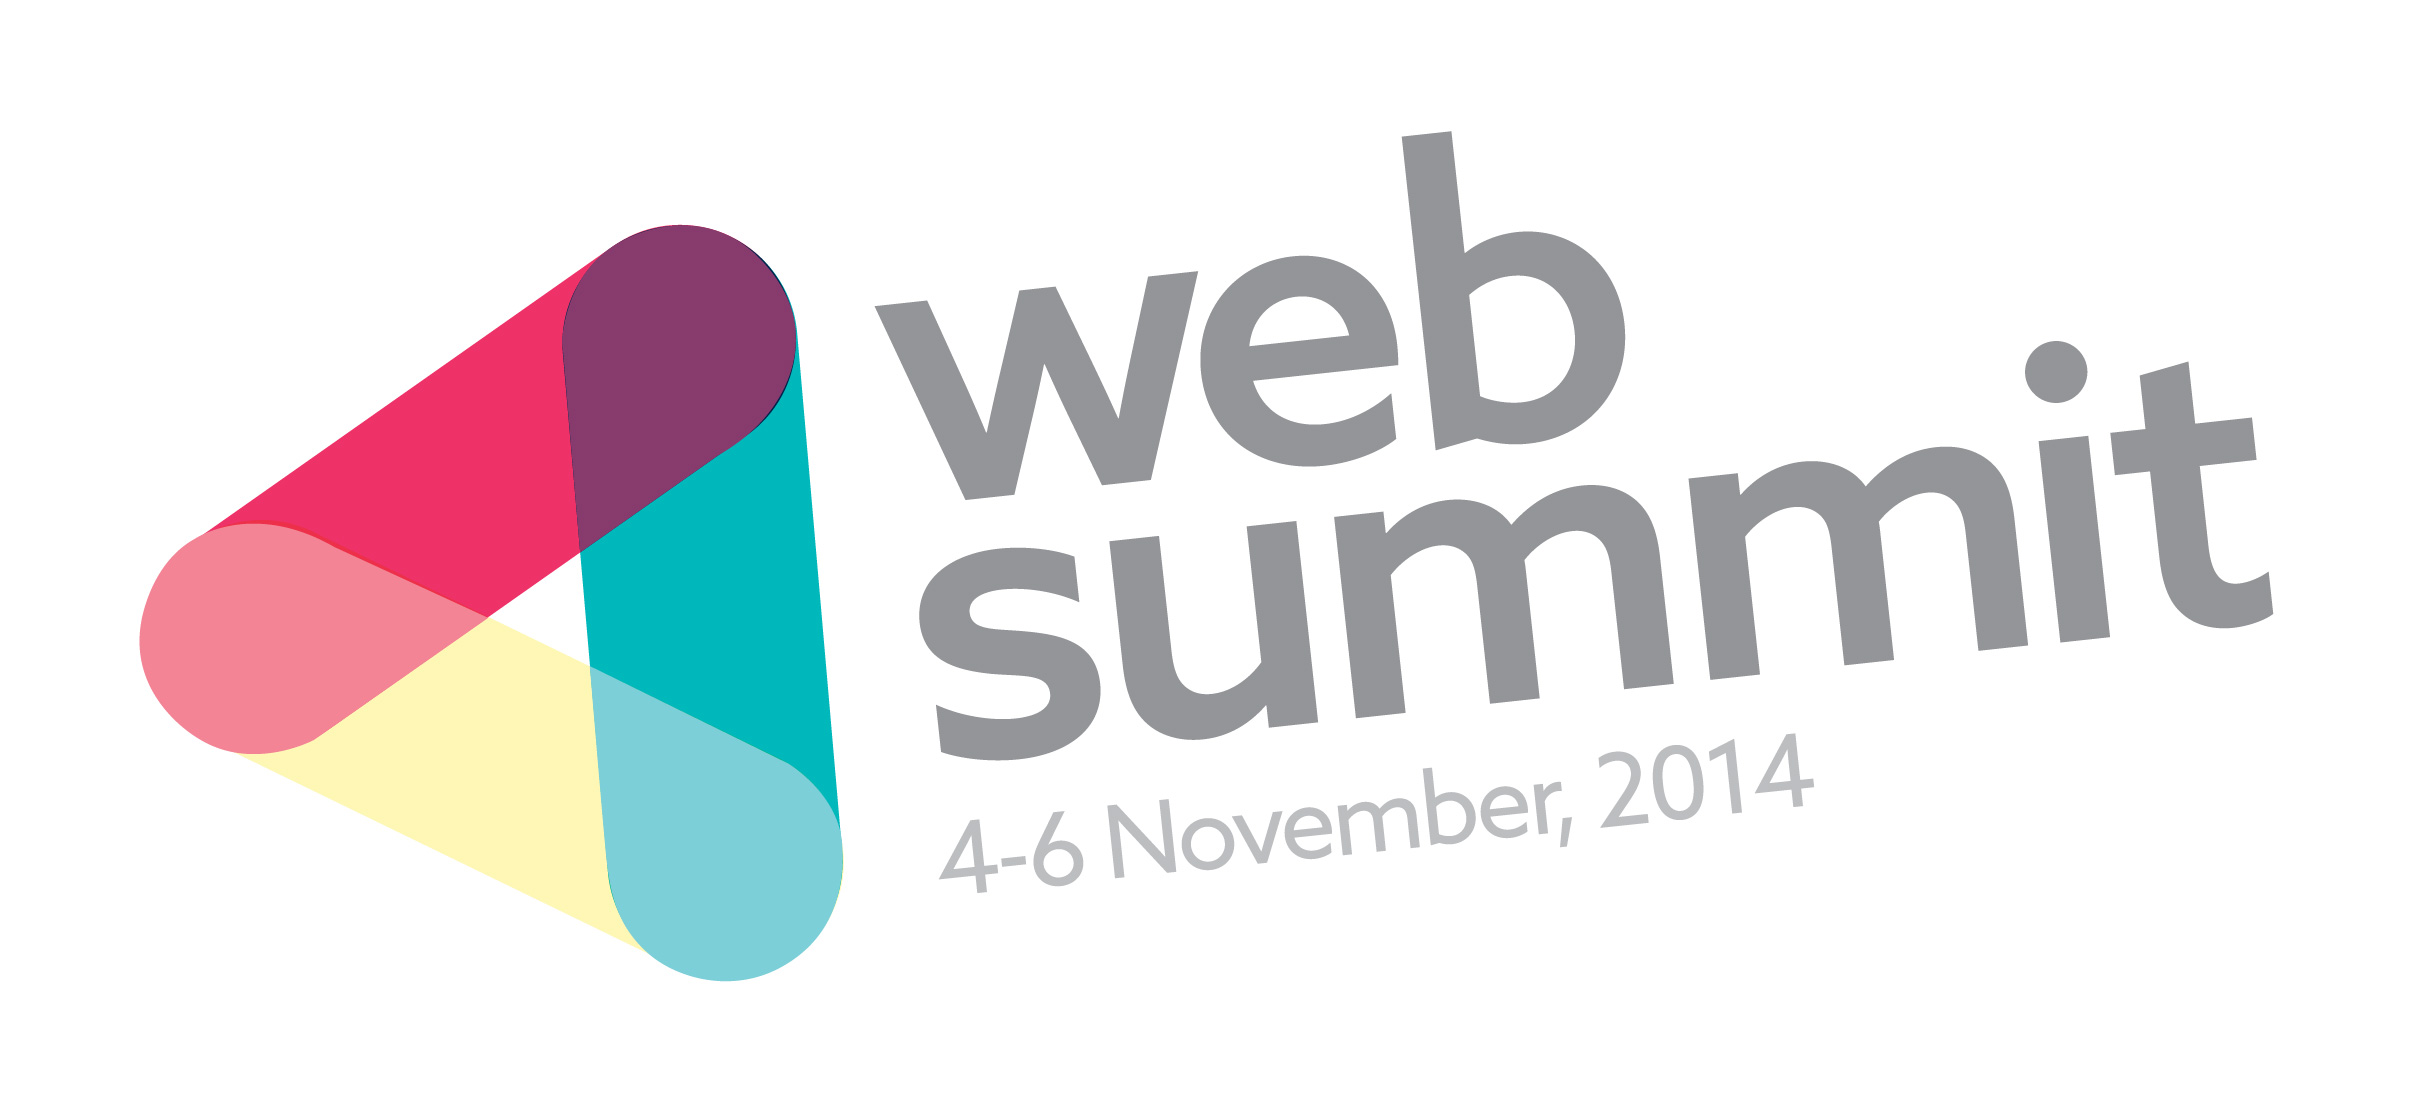 The Web Summit in Dublin 2014